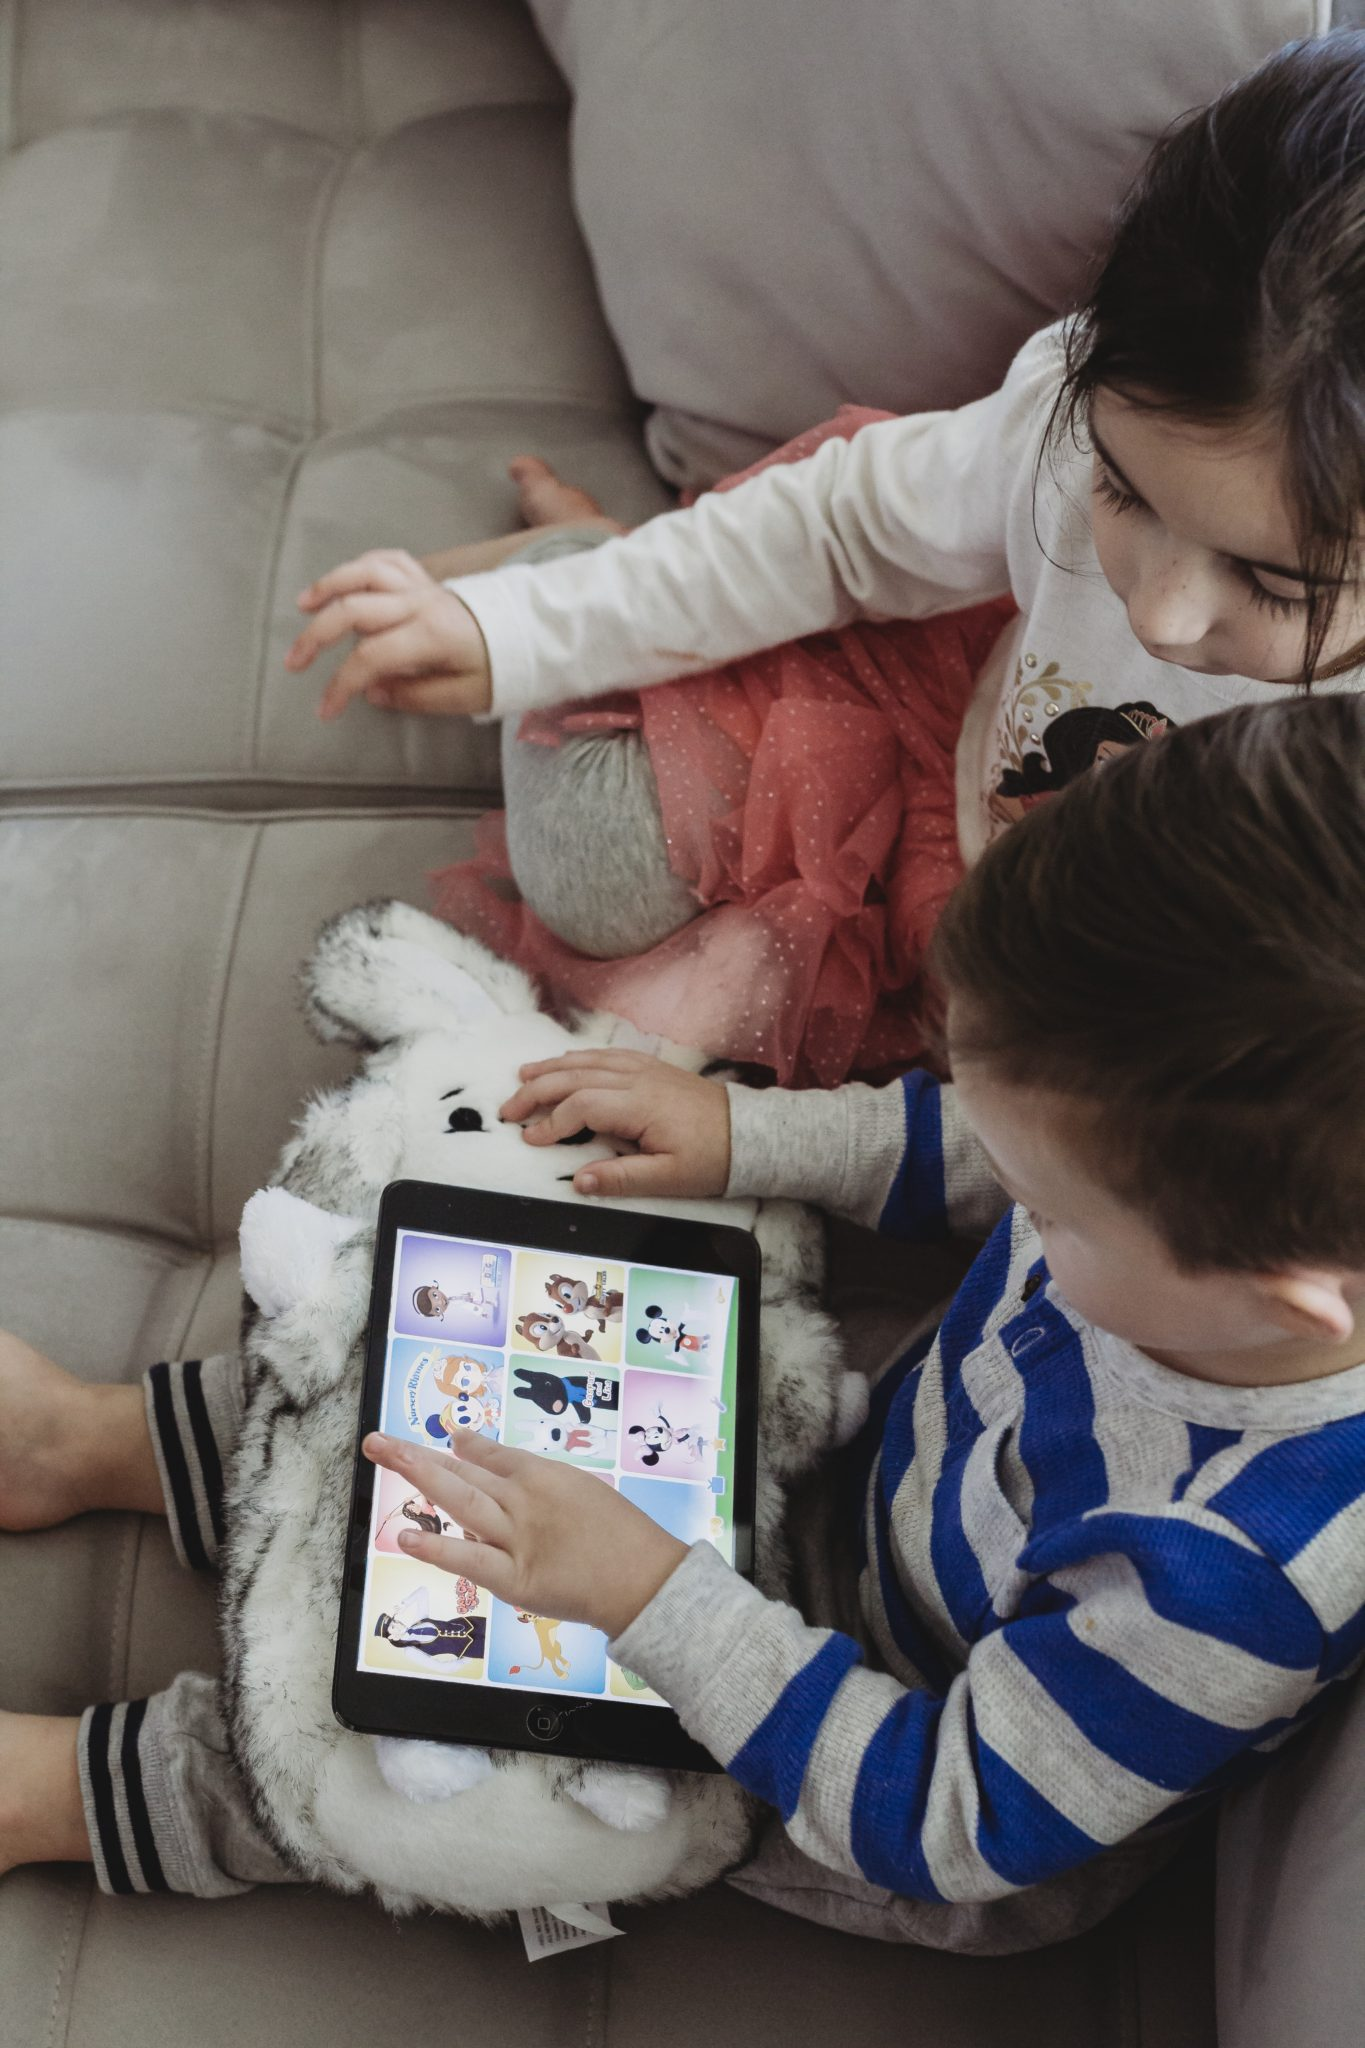 screen time for toddlers, screen time research, tablet usage limits, parental controls for kids tablets, ipad usage for kids